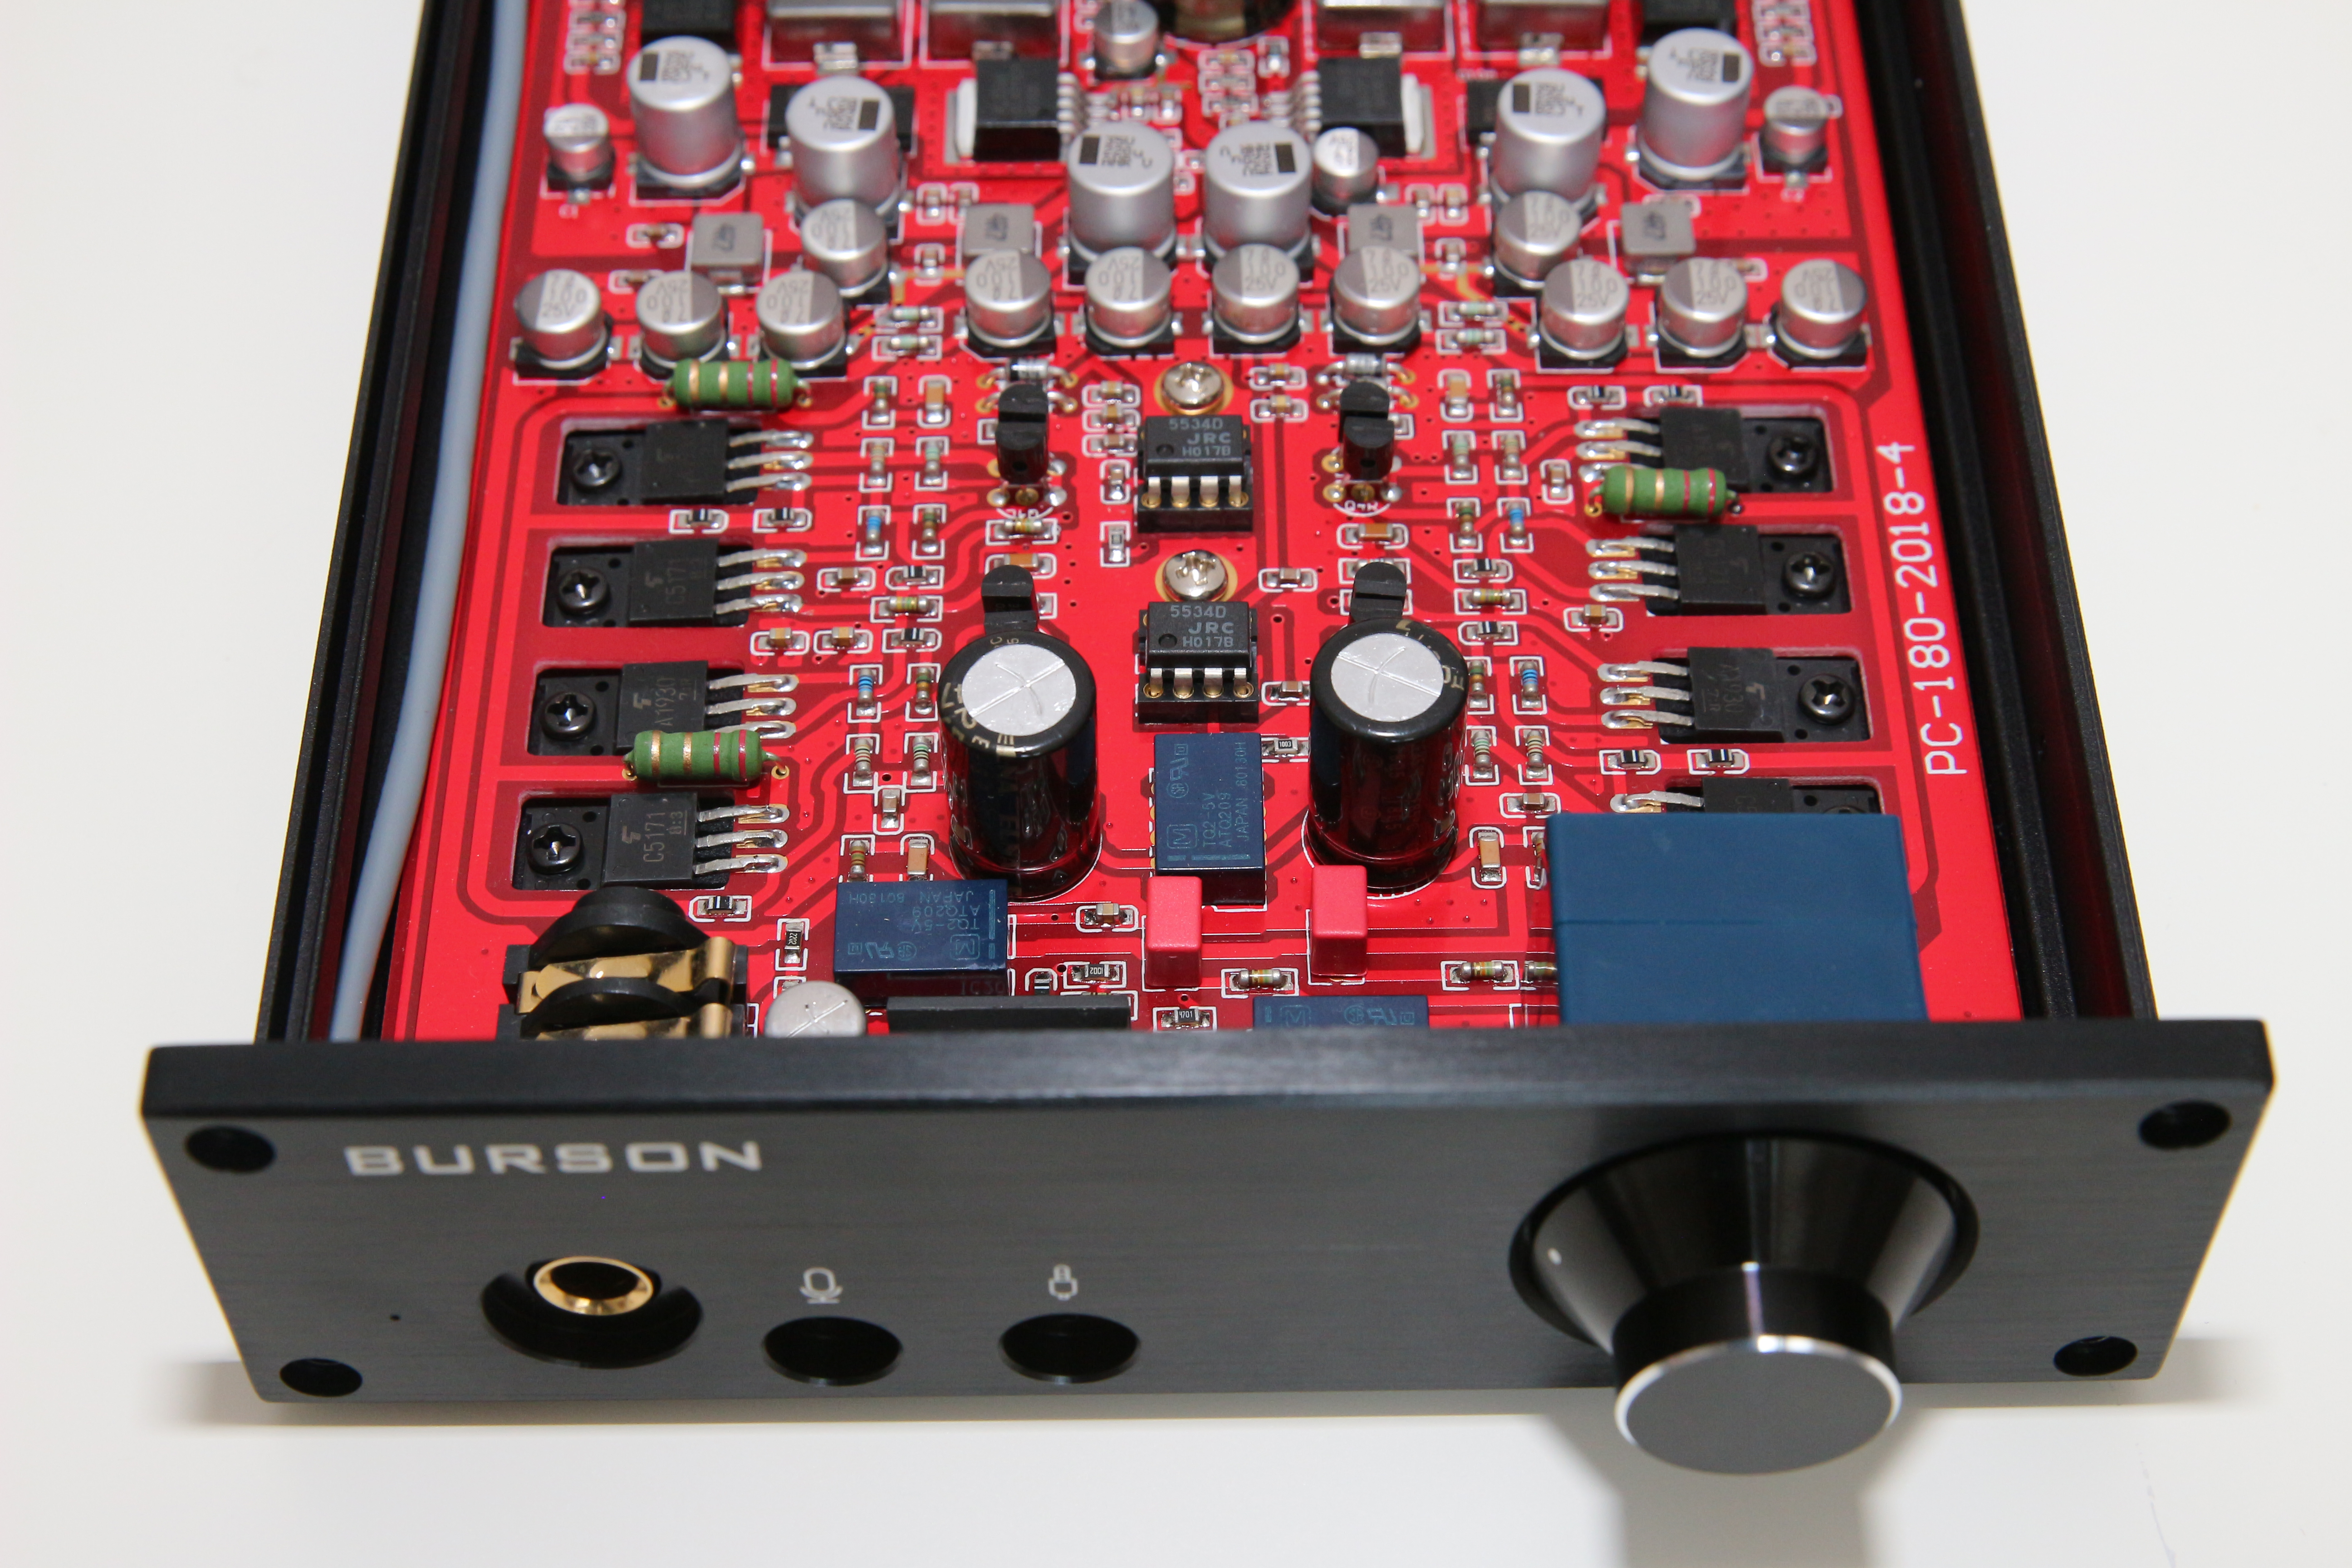 Burson Audio Fun Reviews Headphone And Discussion Head Dual Ne5532 Subwoofer Processing Circuit Low Pass Filter Board 5 Transient Response